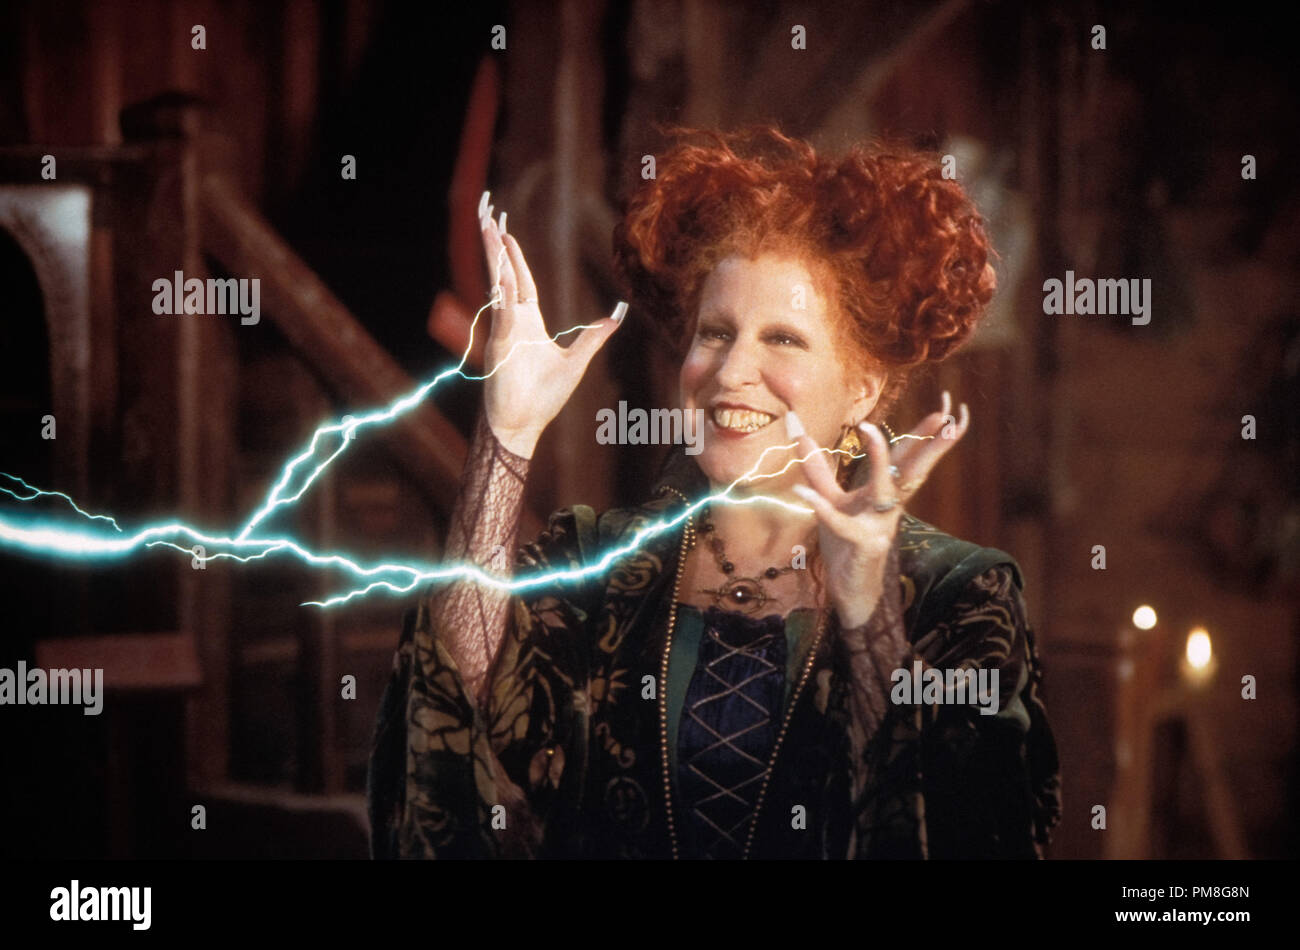 Film Still Publicity Still From Hocus Pocus Bette Midler C 1993 Walt Disney Pictures File Reference 31371275tha For Editorial Use Only All Rights Reserved Stock Photo Alamy